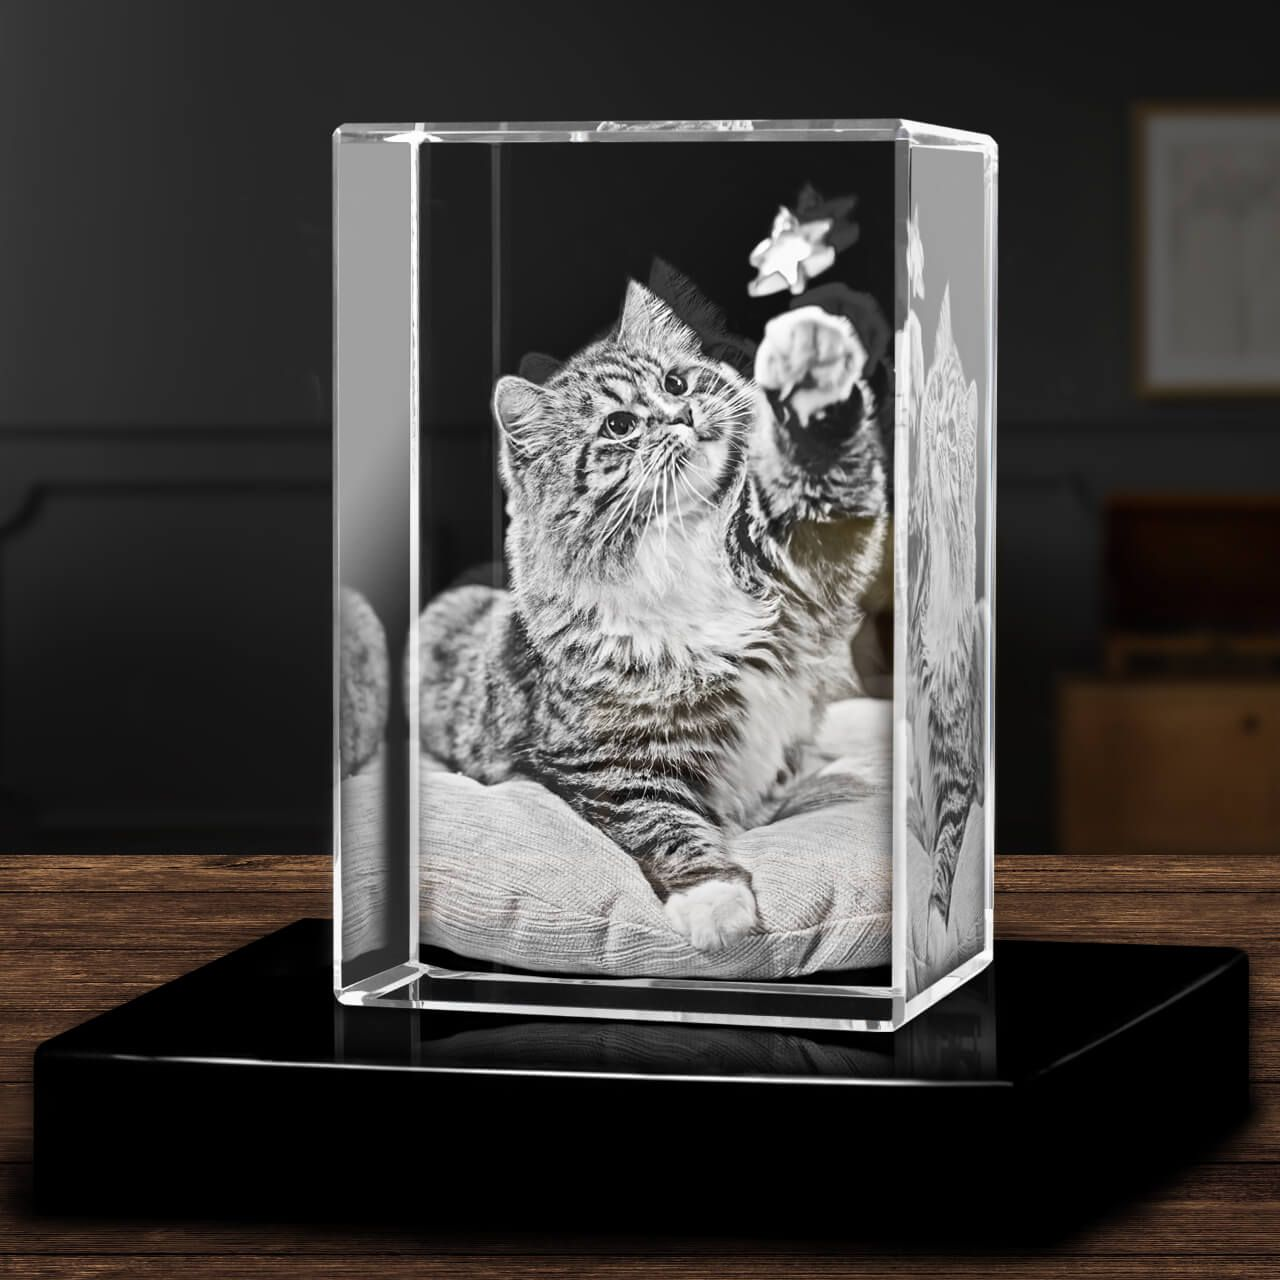 Crystal 3d Rectangle Picture In Glass Block Artpix 3d In 2020 3d Photo Crystals 3d Rectangle 3d Laser Gifts